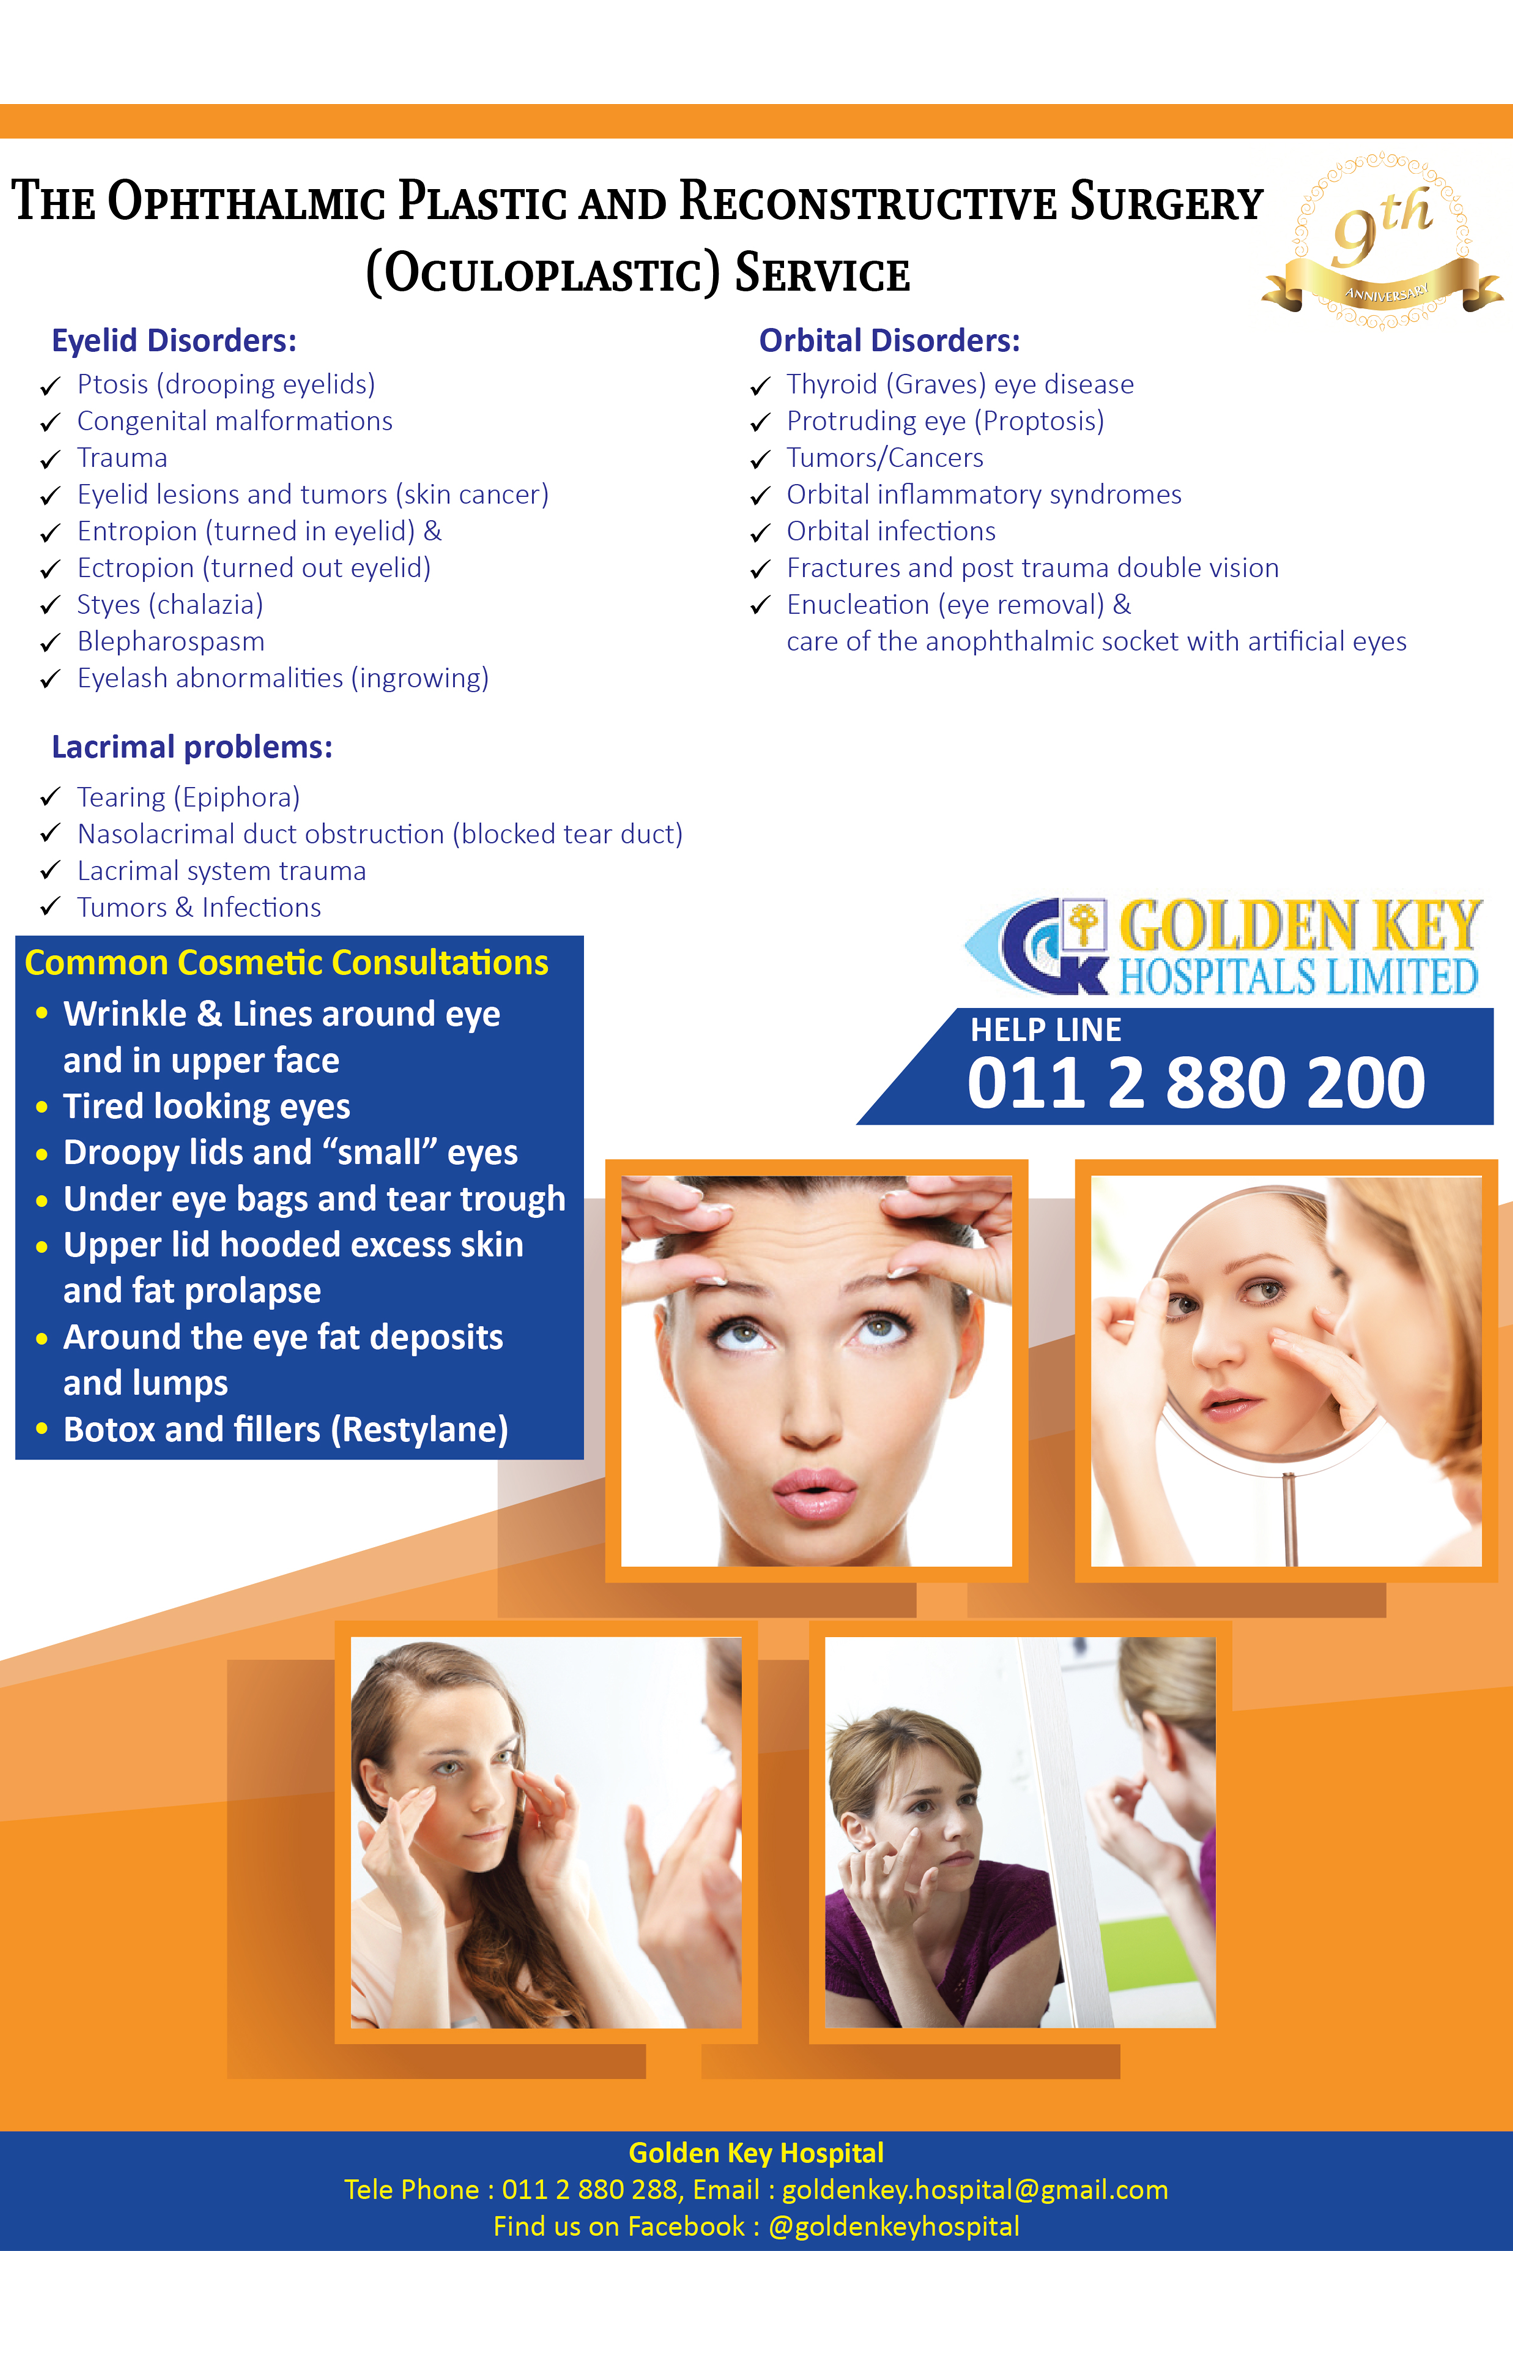 Golden Key Hospitals